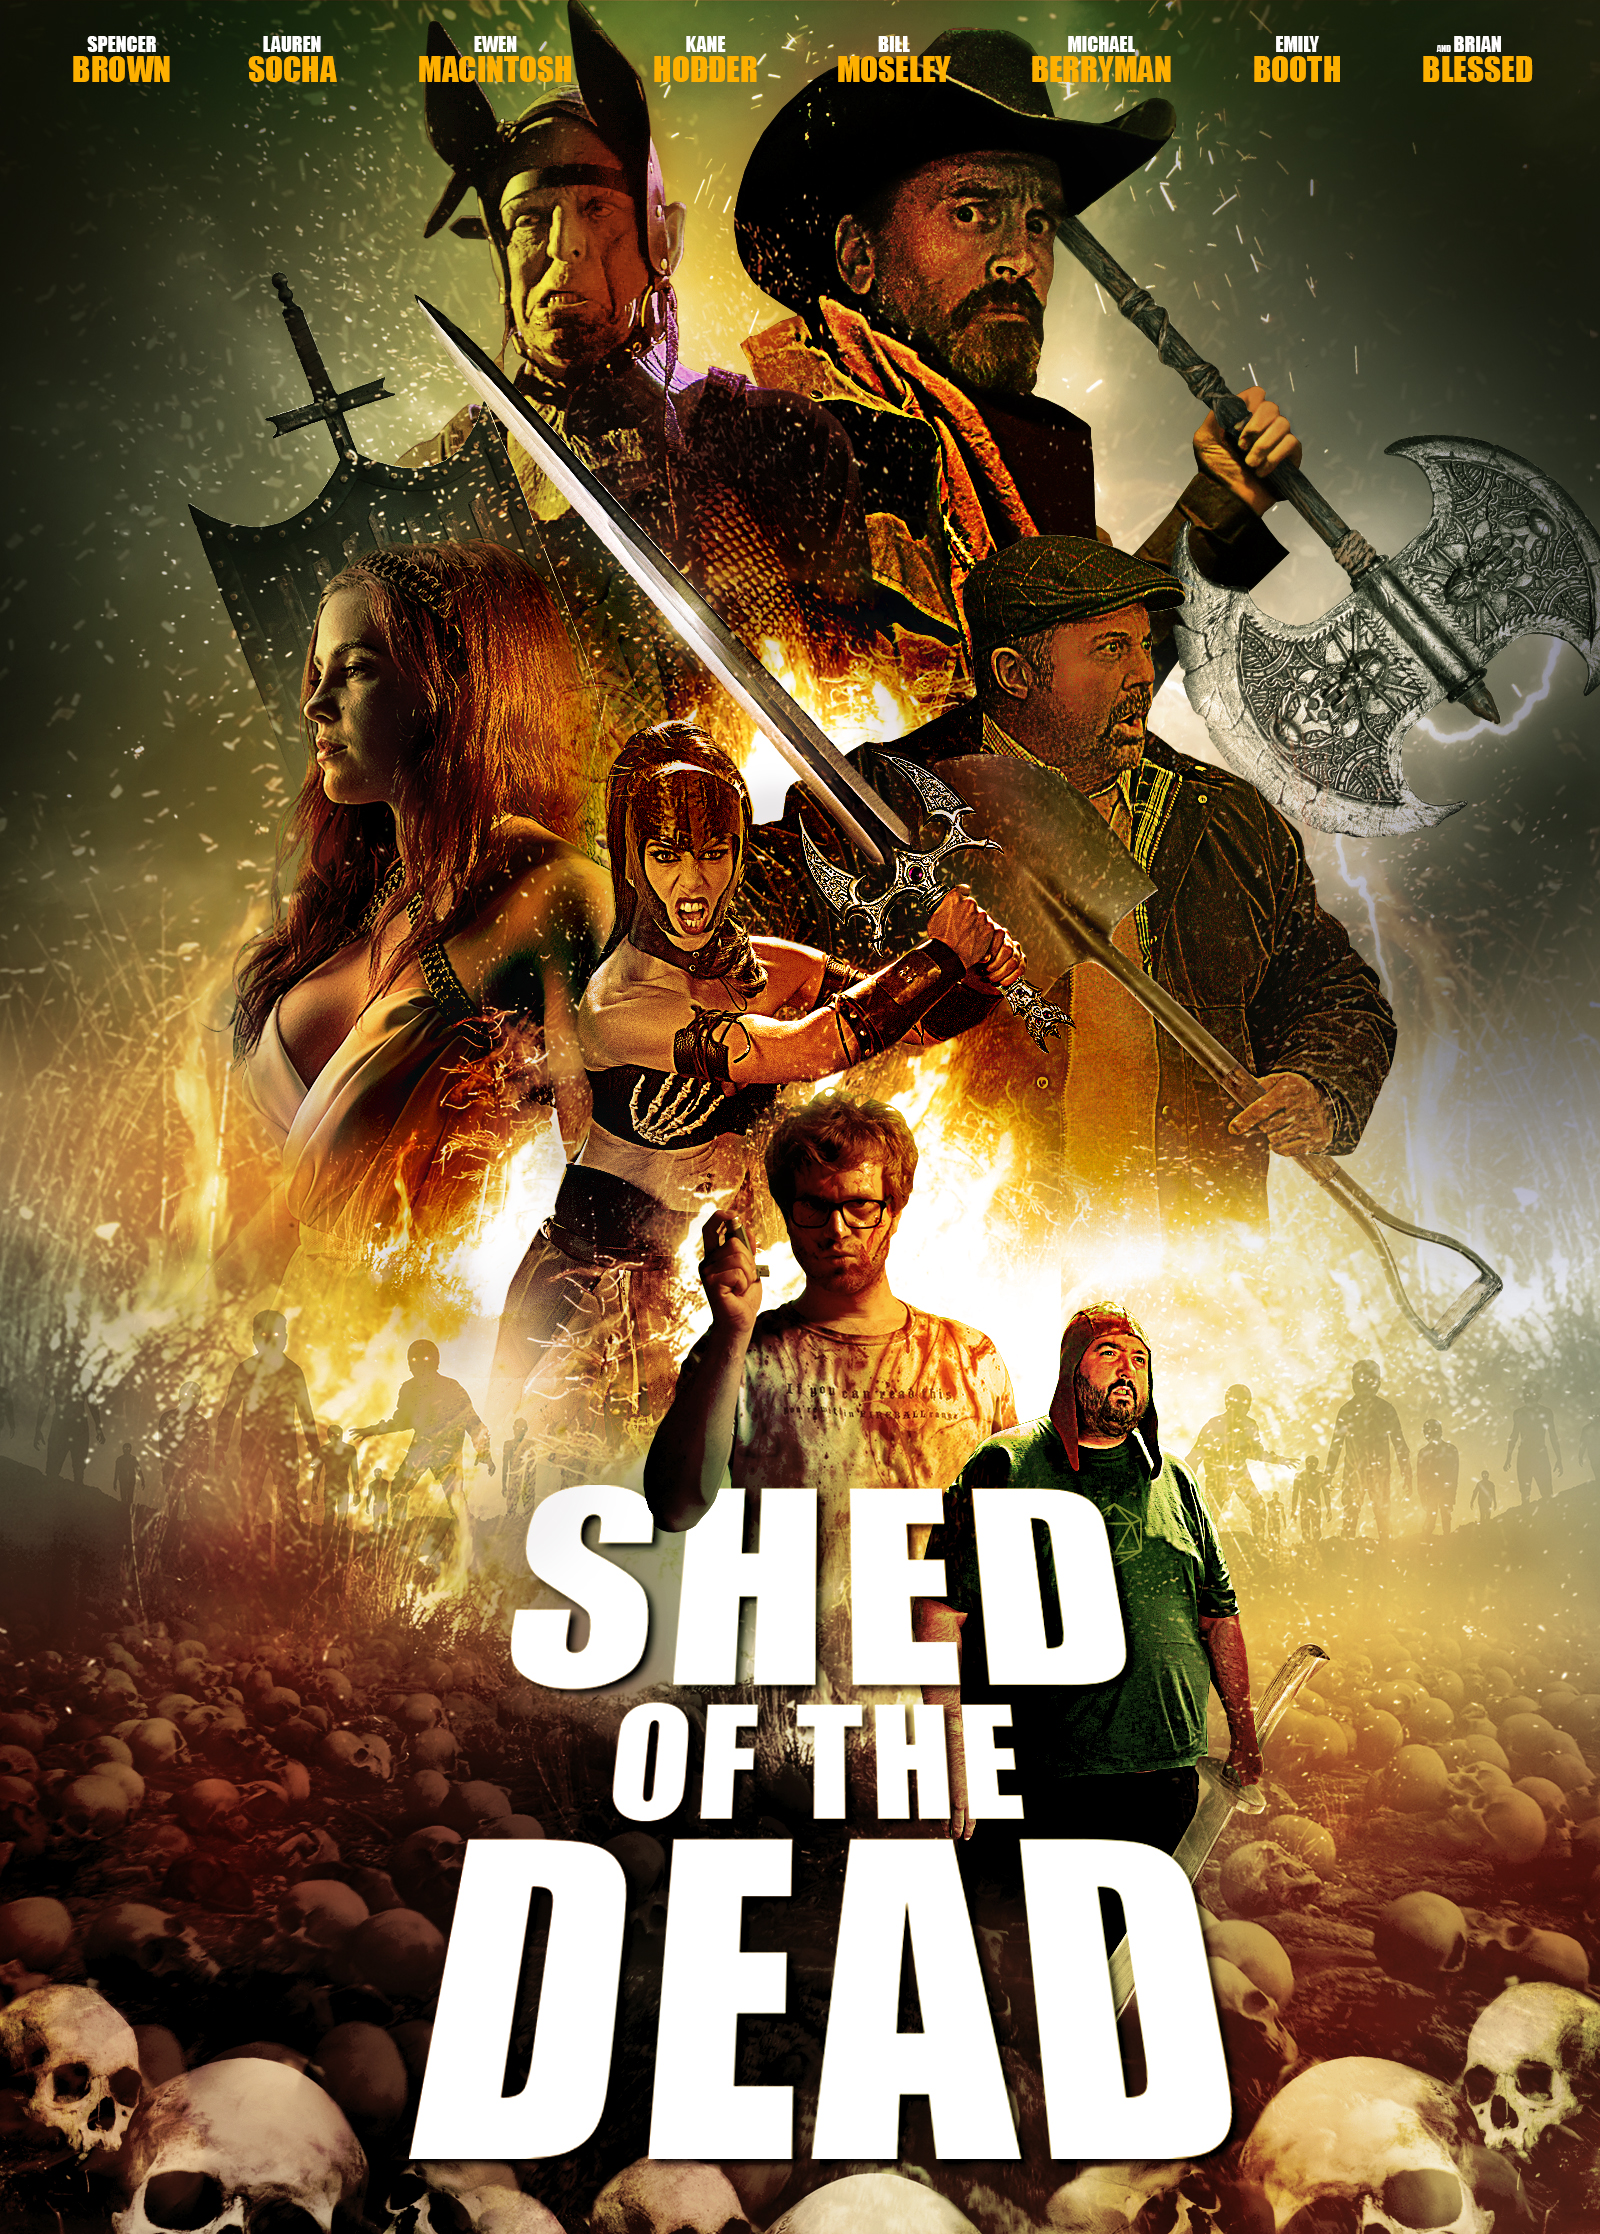 Michael Berryman, Emily Booth, Spencer Brown, Kane Hodder, Bill Moseley, and Ewen MacIntosh in Shed of the Dead (2019)